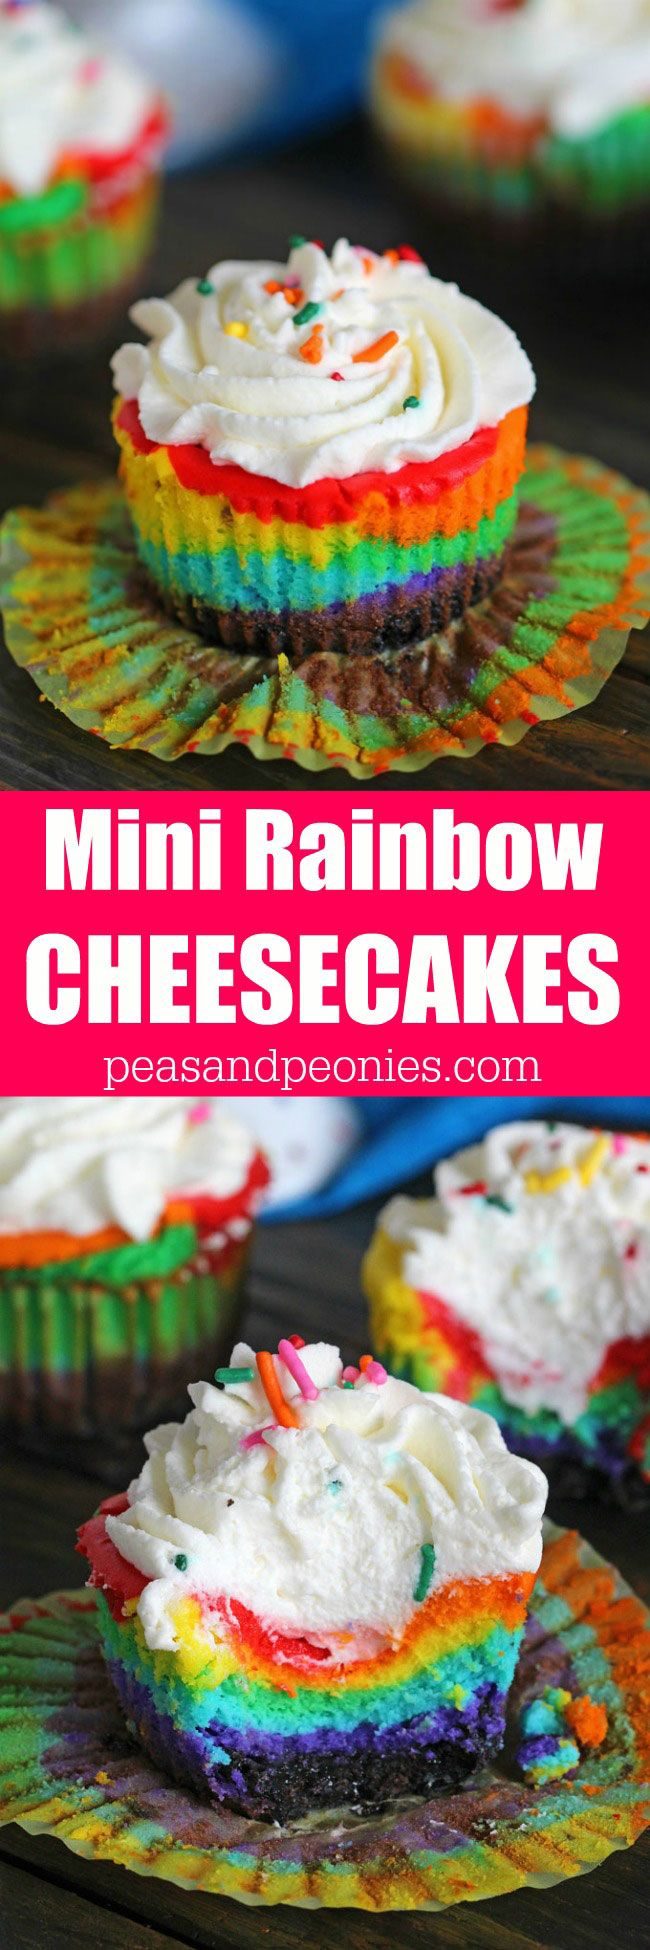 Mini Rainbow Cheesecakes are incredibly easy to make and very festive. They taste delicious and would be a fun project to do with the kids.